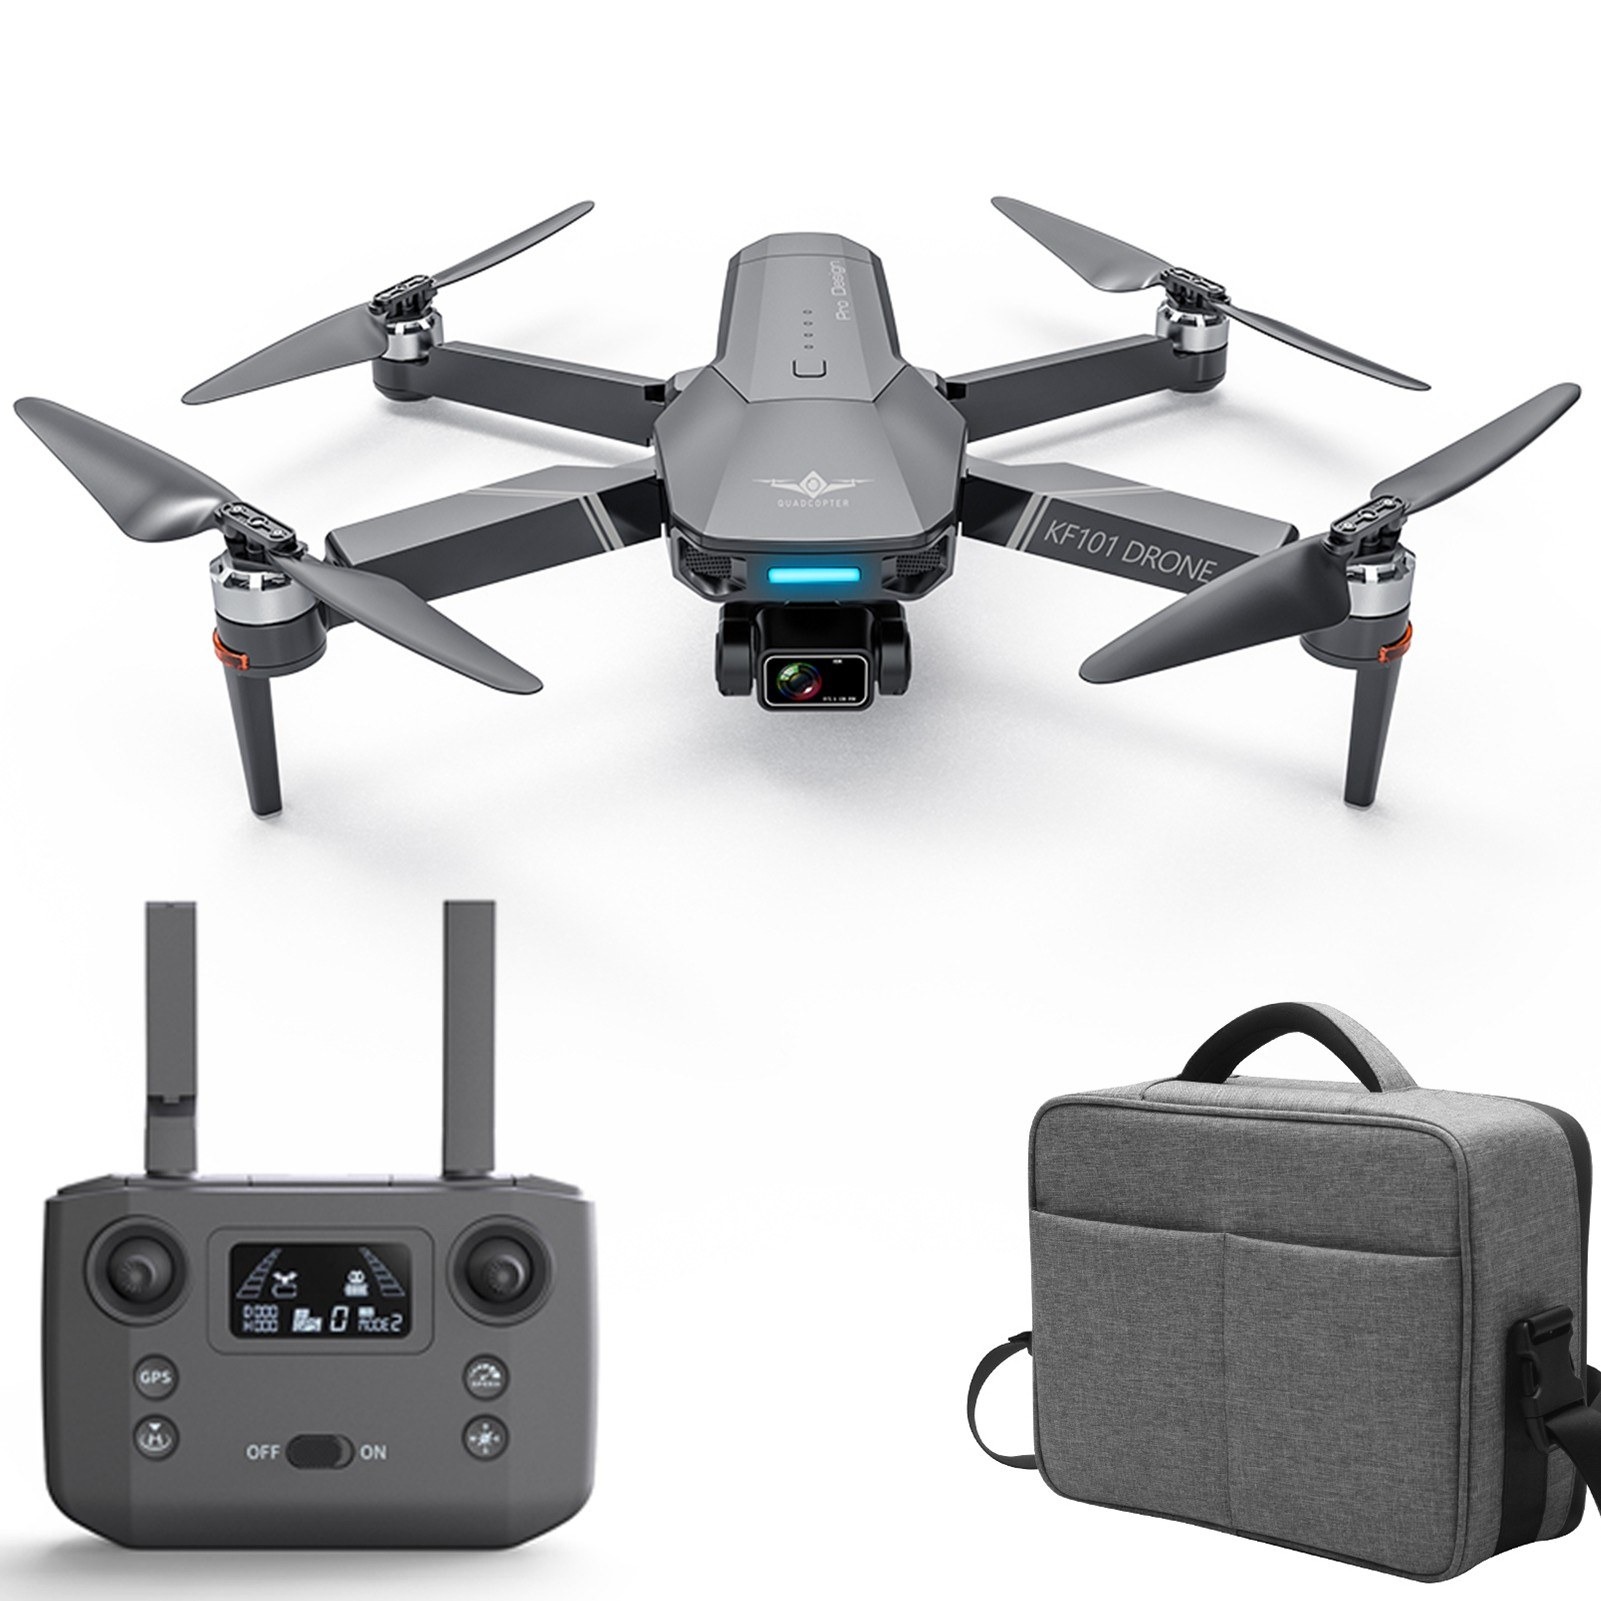 Tomtop - 50% OFF KF101 5G Wifi GPS FPV 4K Camera RC Drone, $189.99 (Inclusive of VAT)